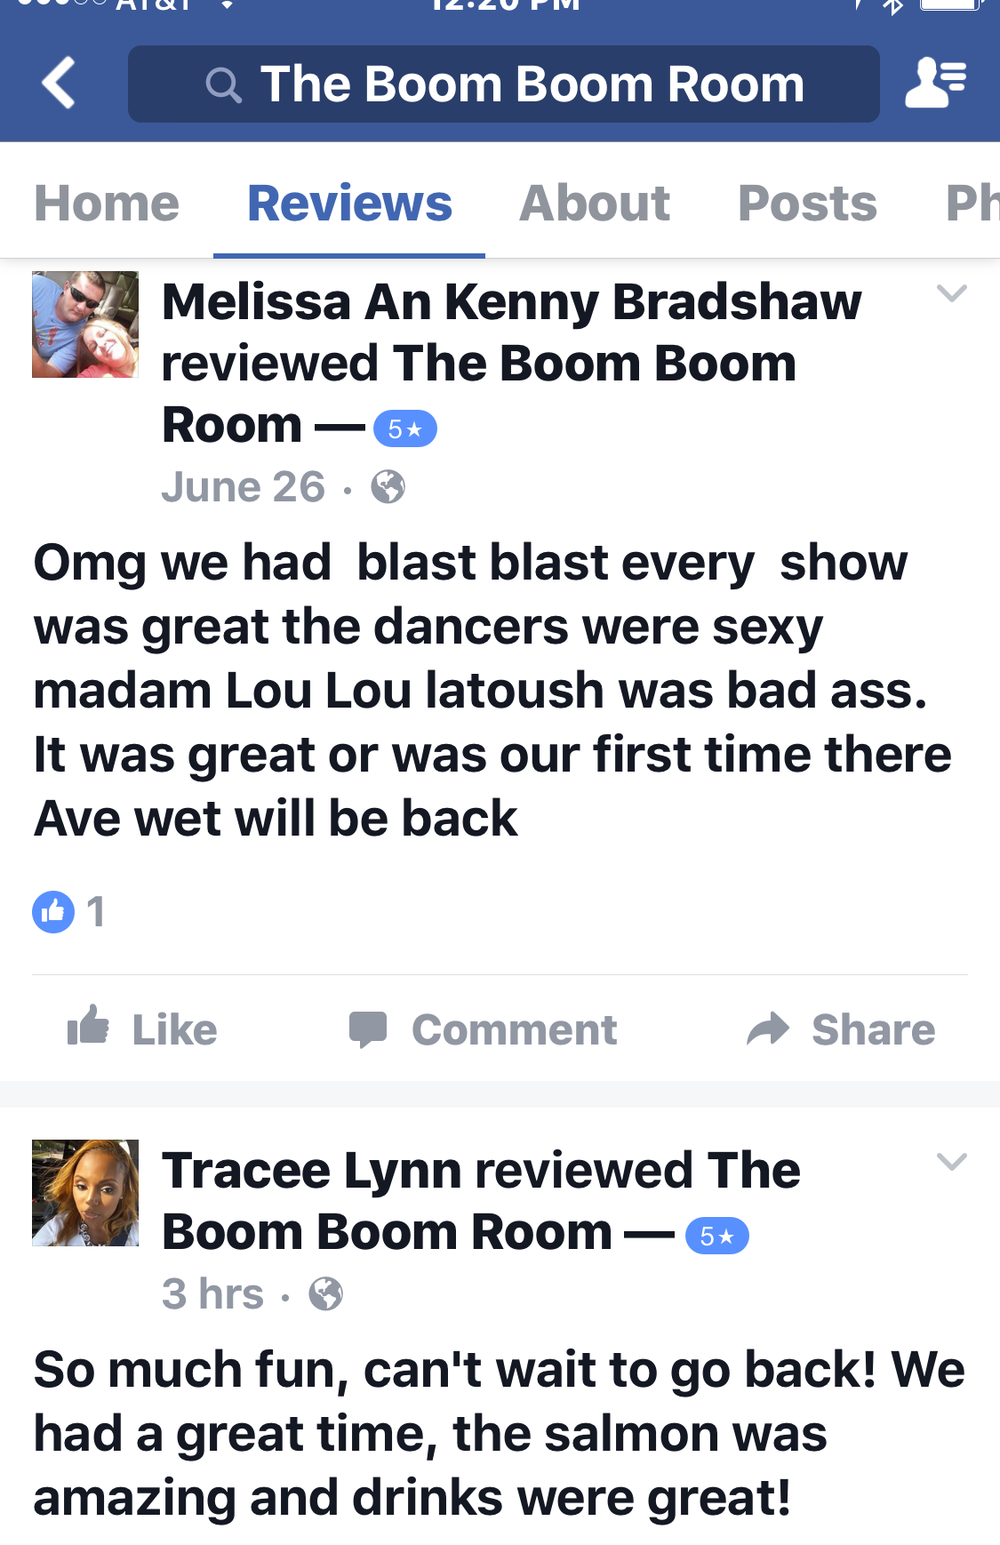 The Boom Boom Room St. Louis Burlesque Positive Reviews -139.png